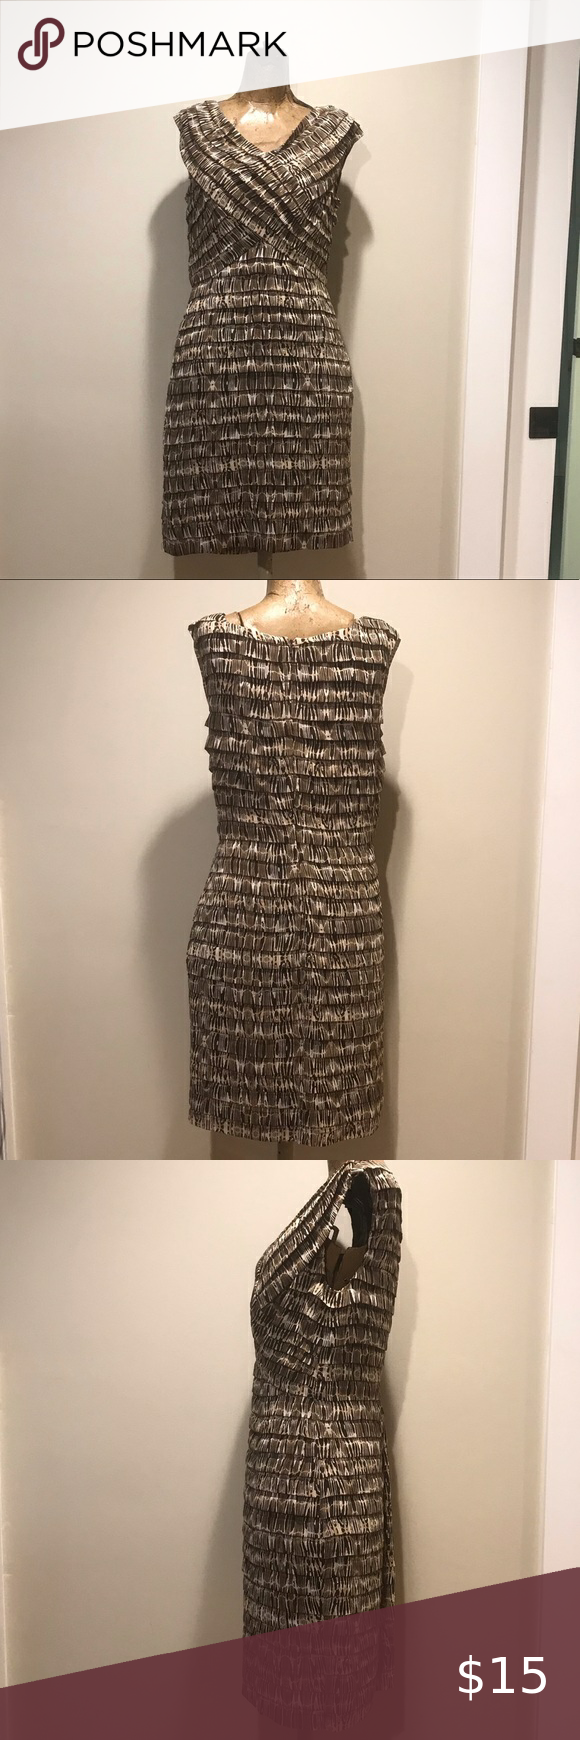 Brown And Tan Cocktail Dress Black Lace Cocktail Dress Cocktail Dress Lace Purple Cocktail Dress [ 1740 x 580 Pixel ]